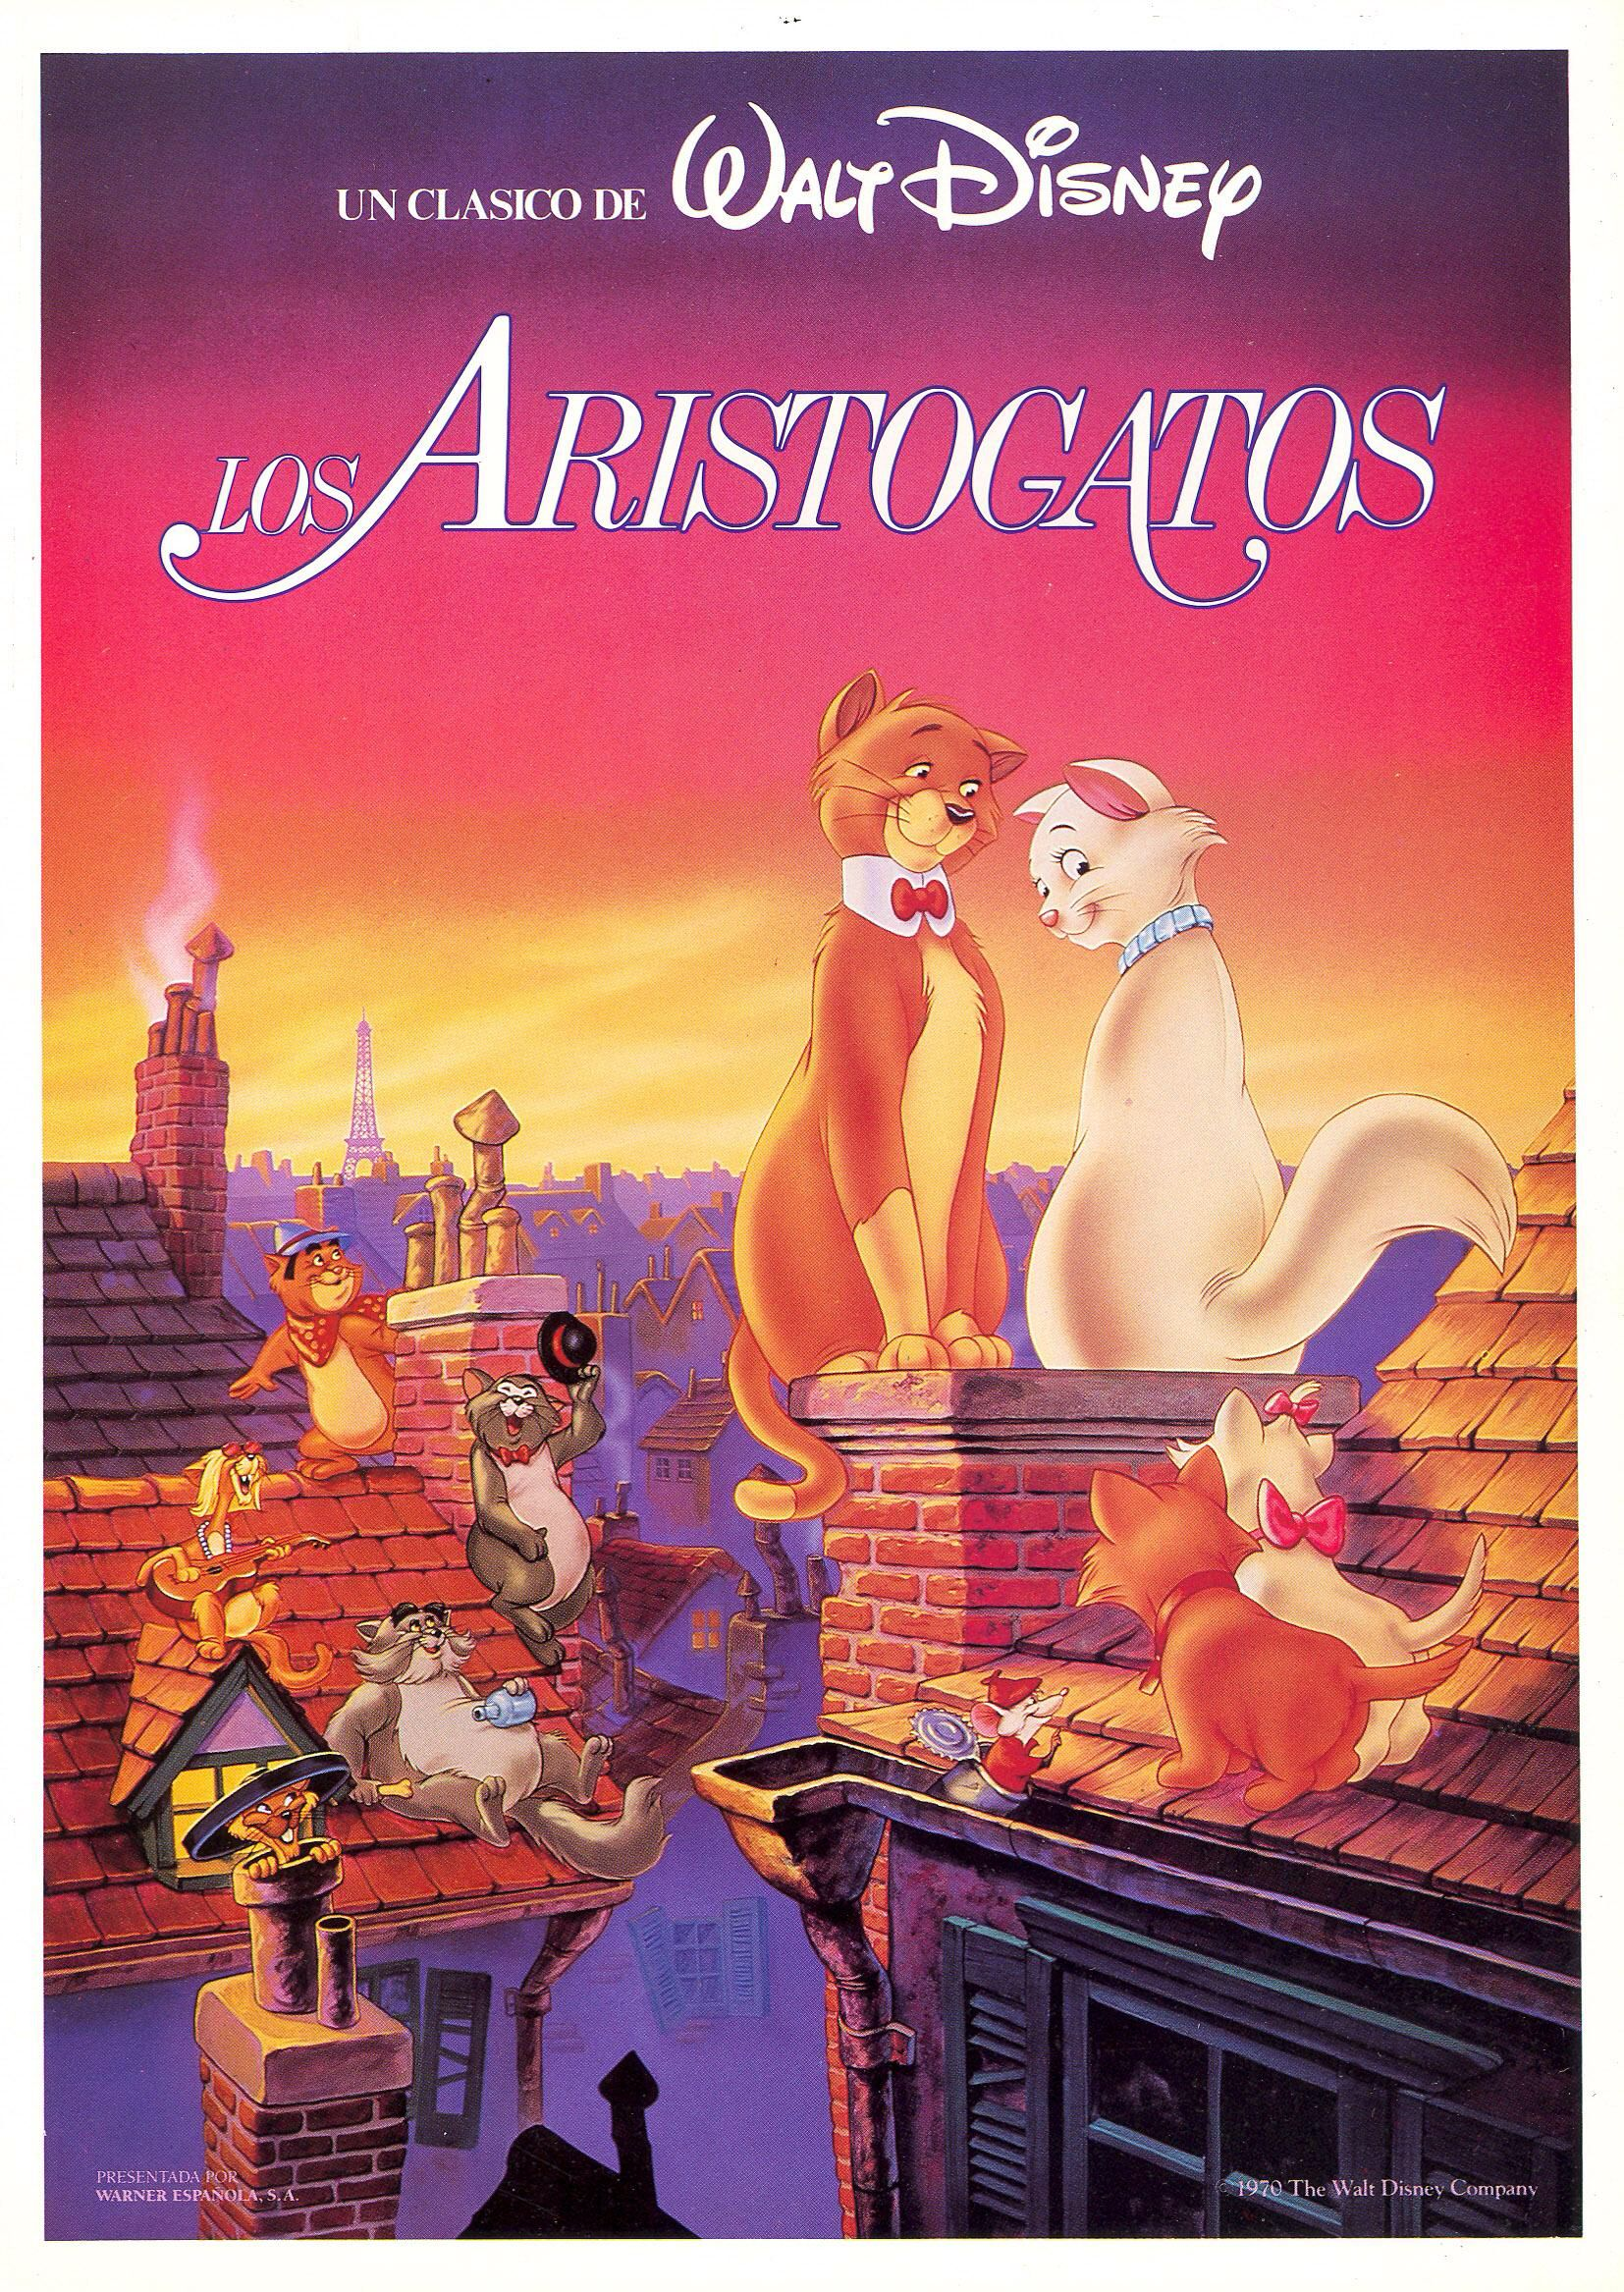 Los Aristogatos Aristocats, Aristocats movie, Disney posters